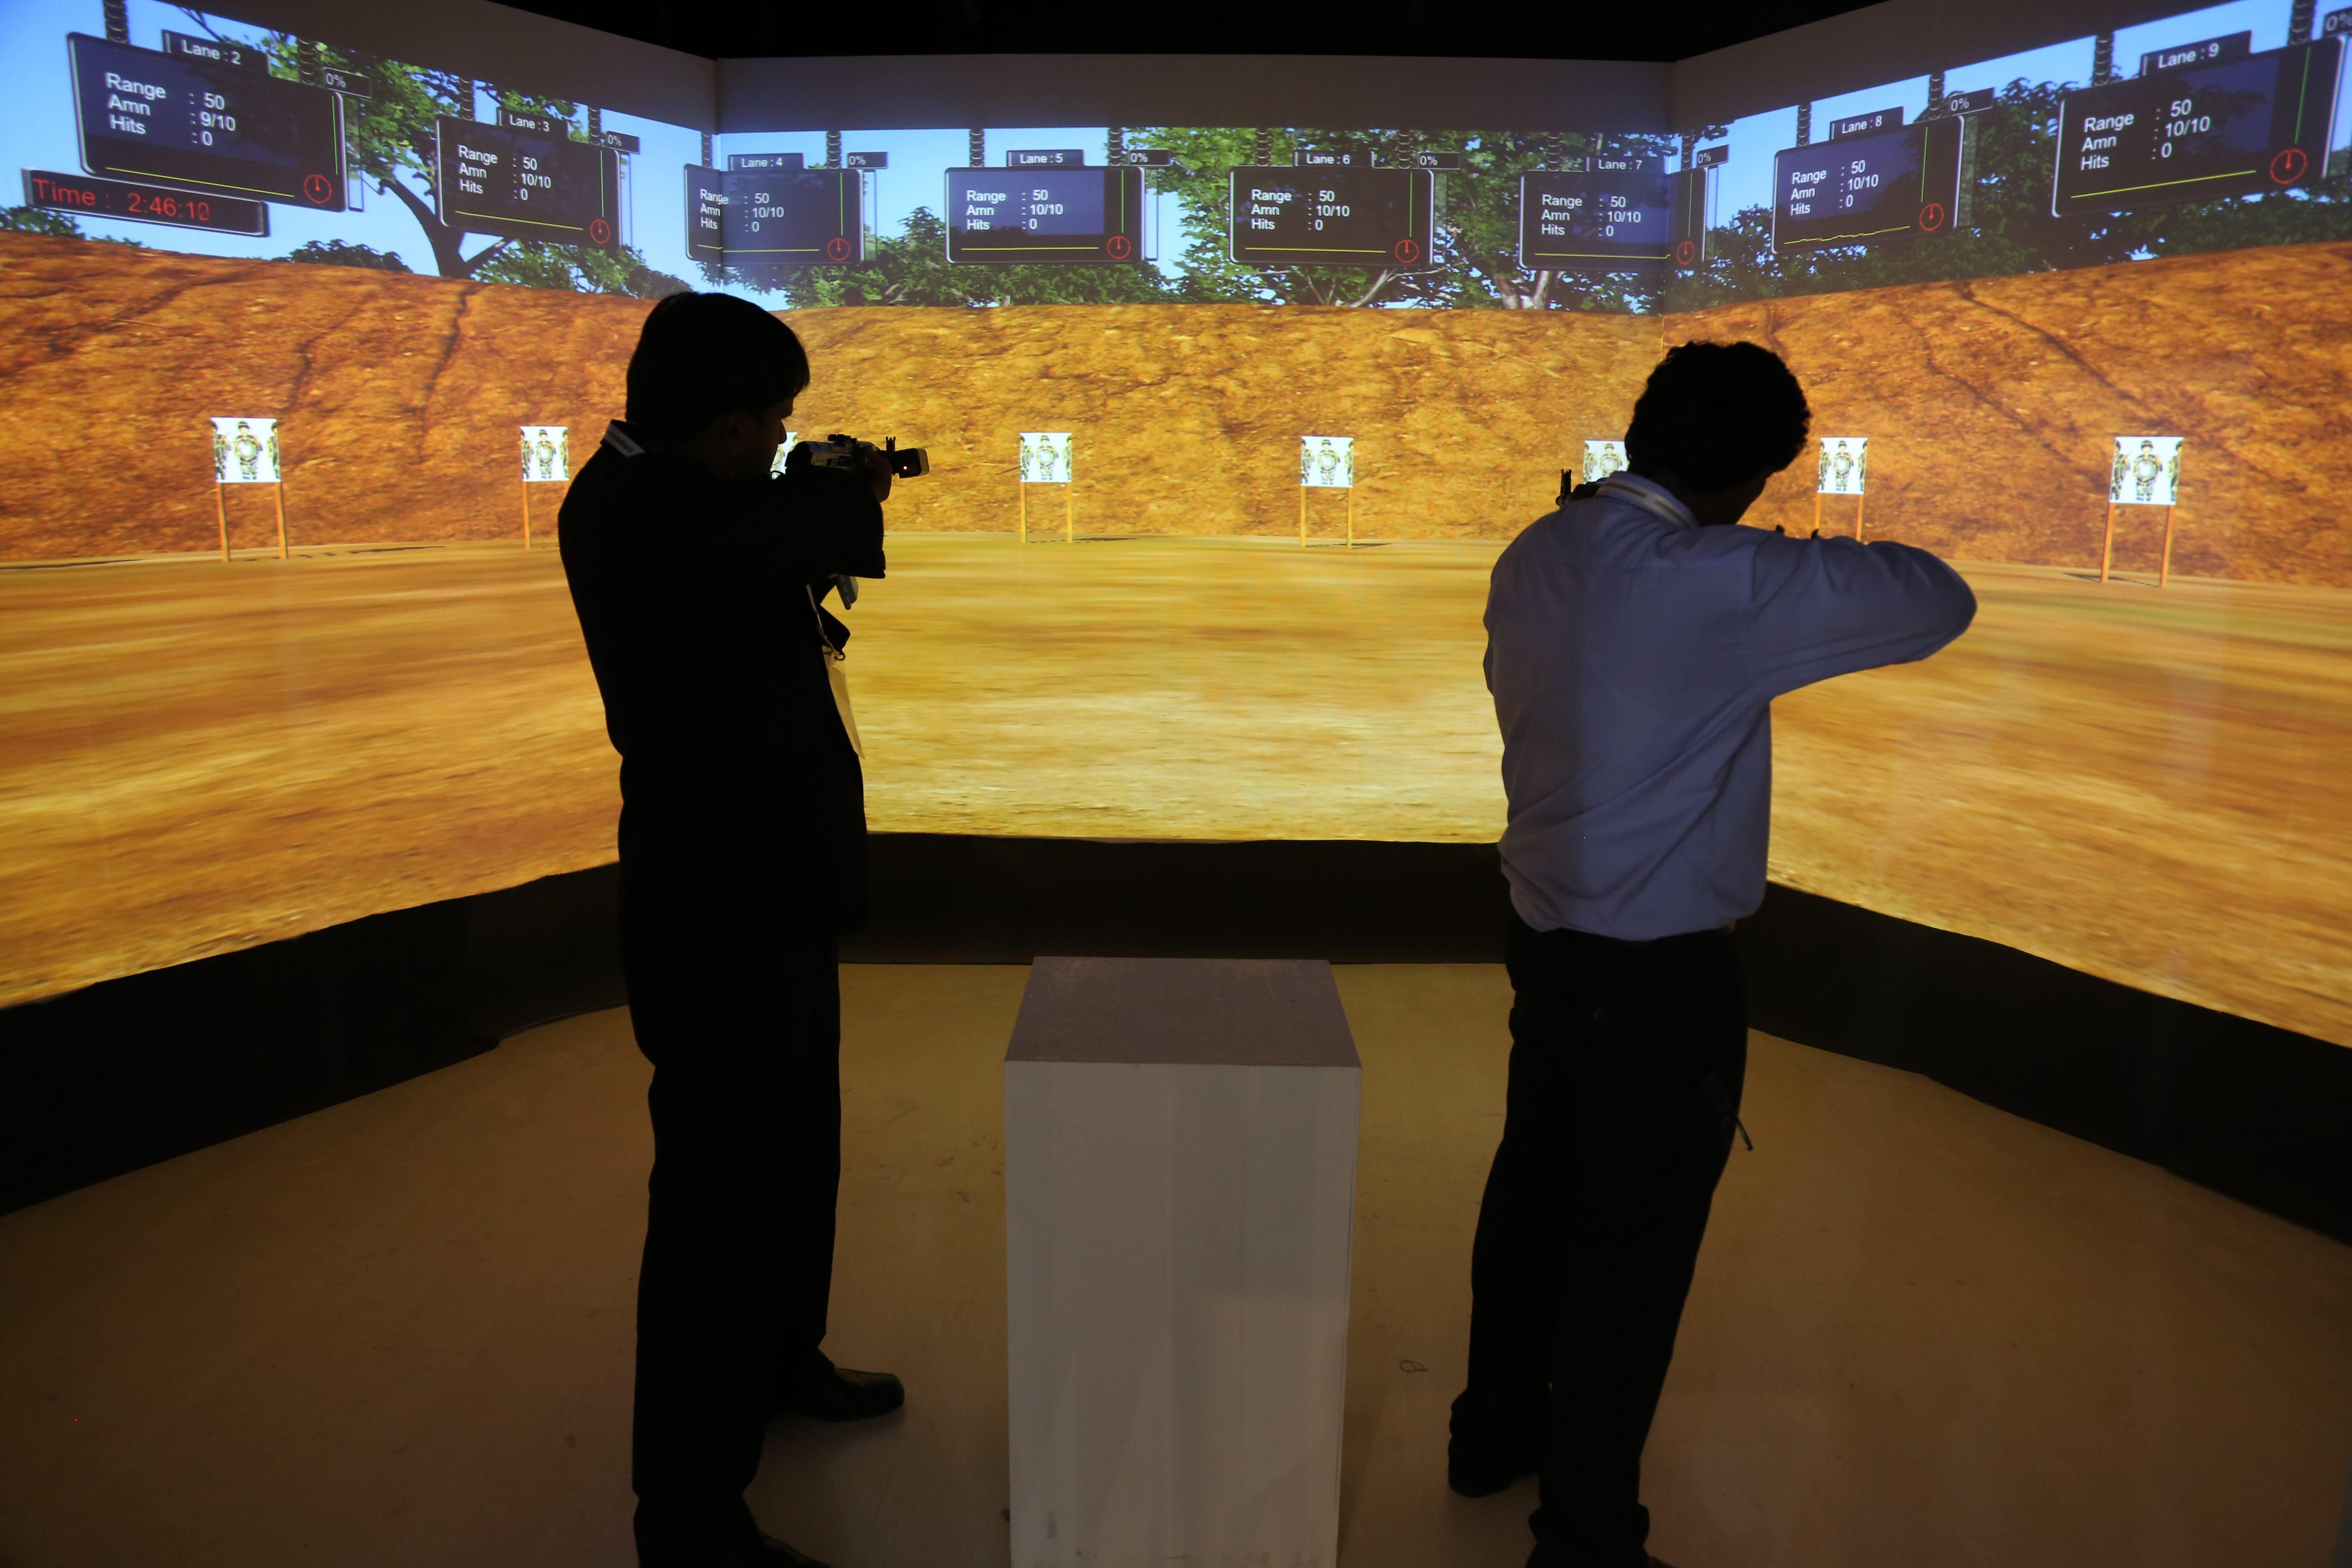 infantry-weapons-training-simulator-iwts